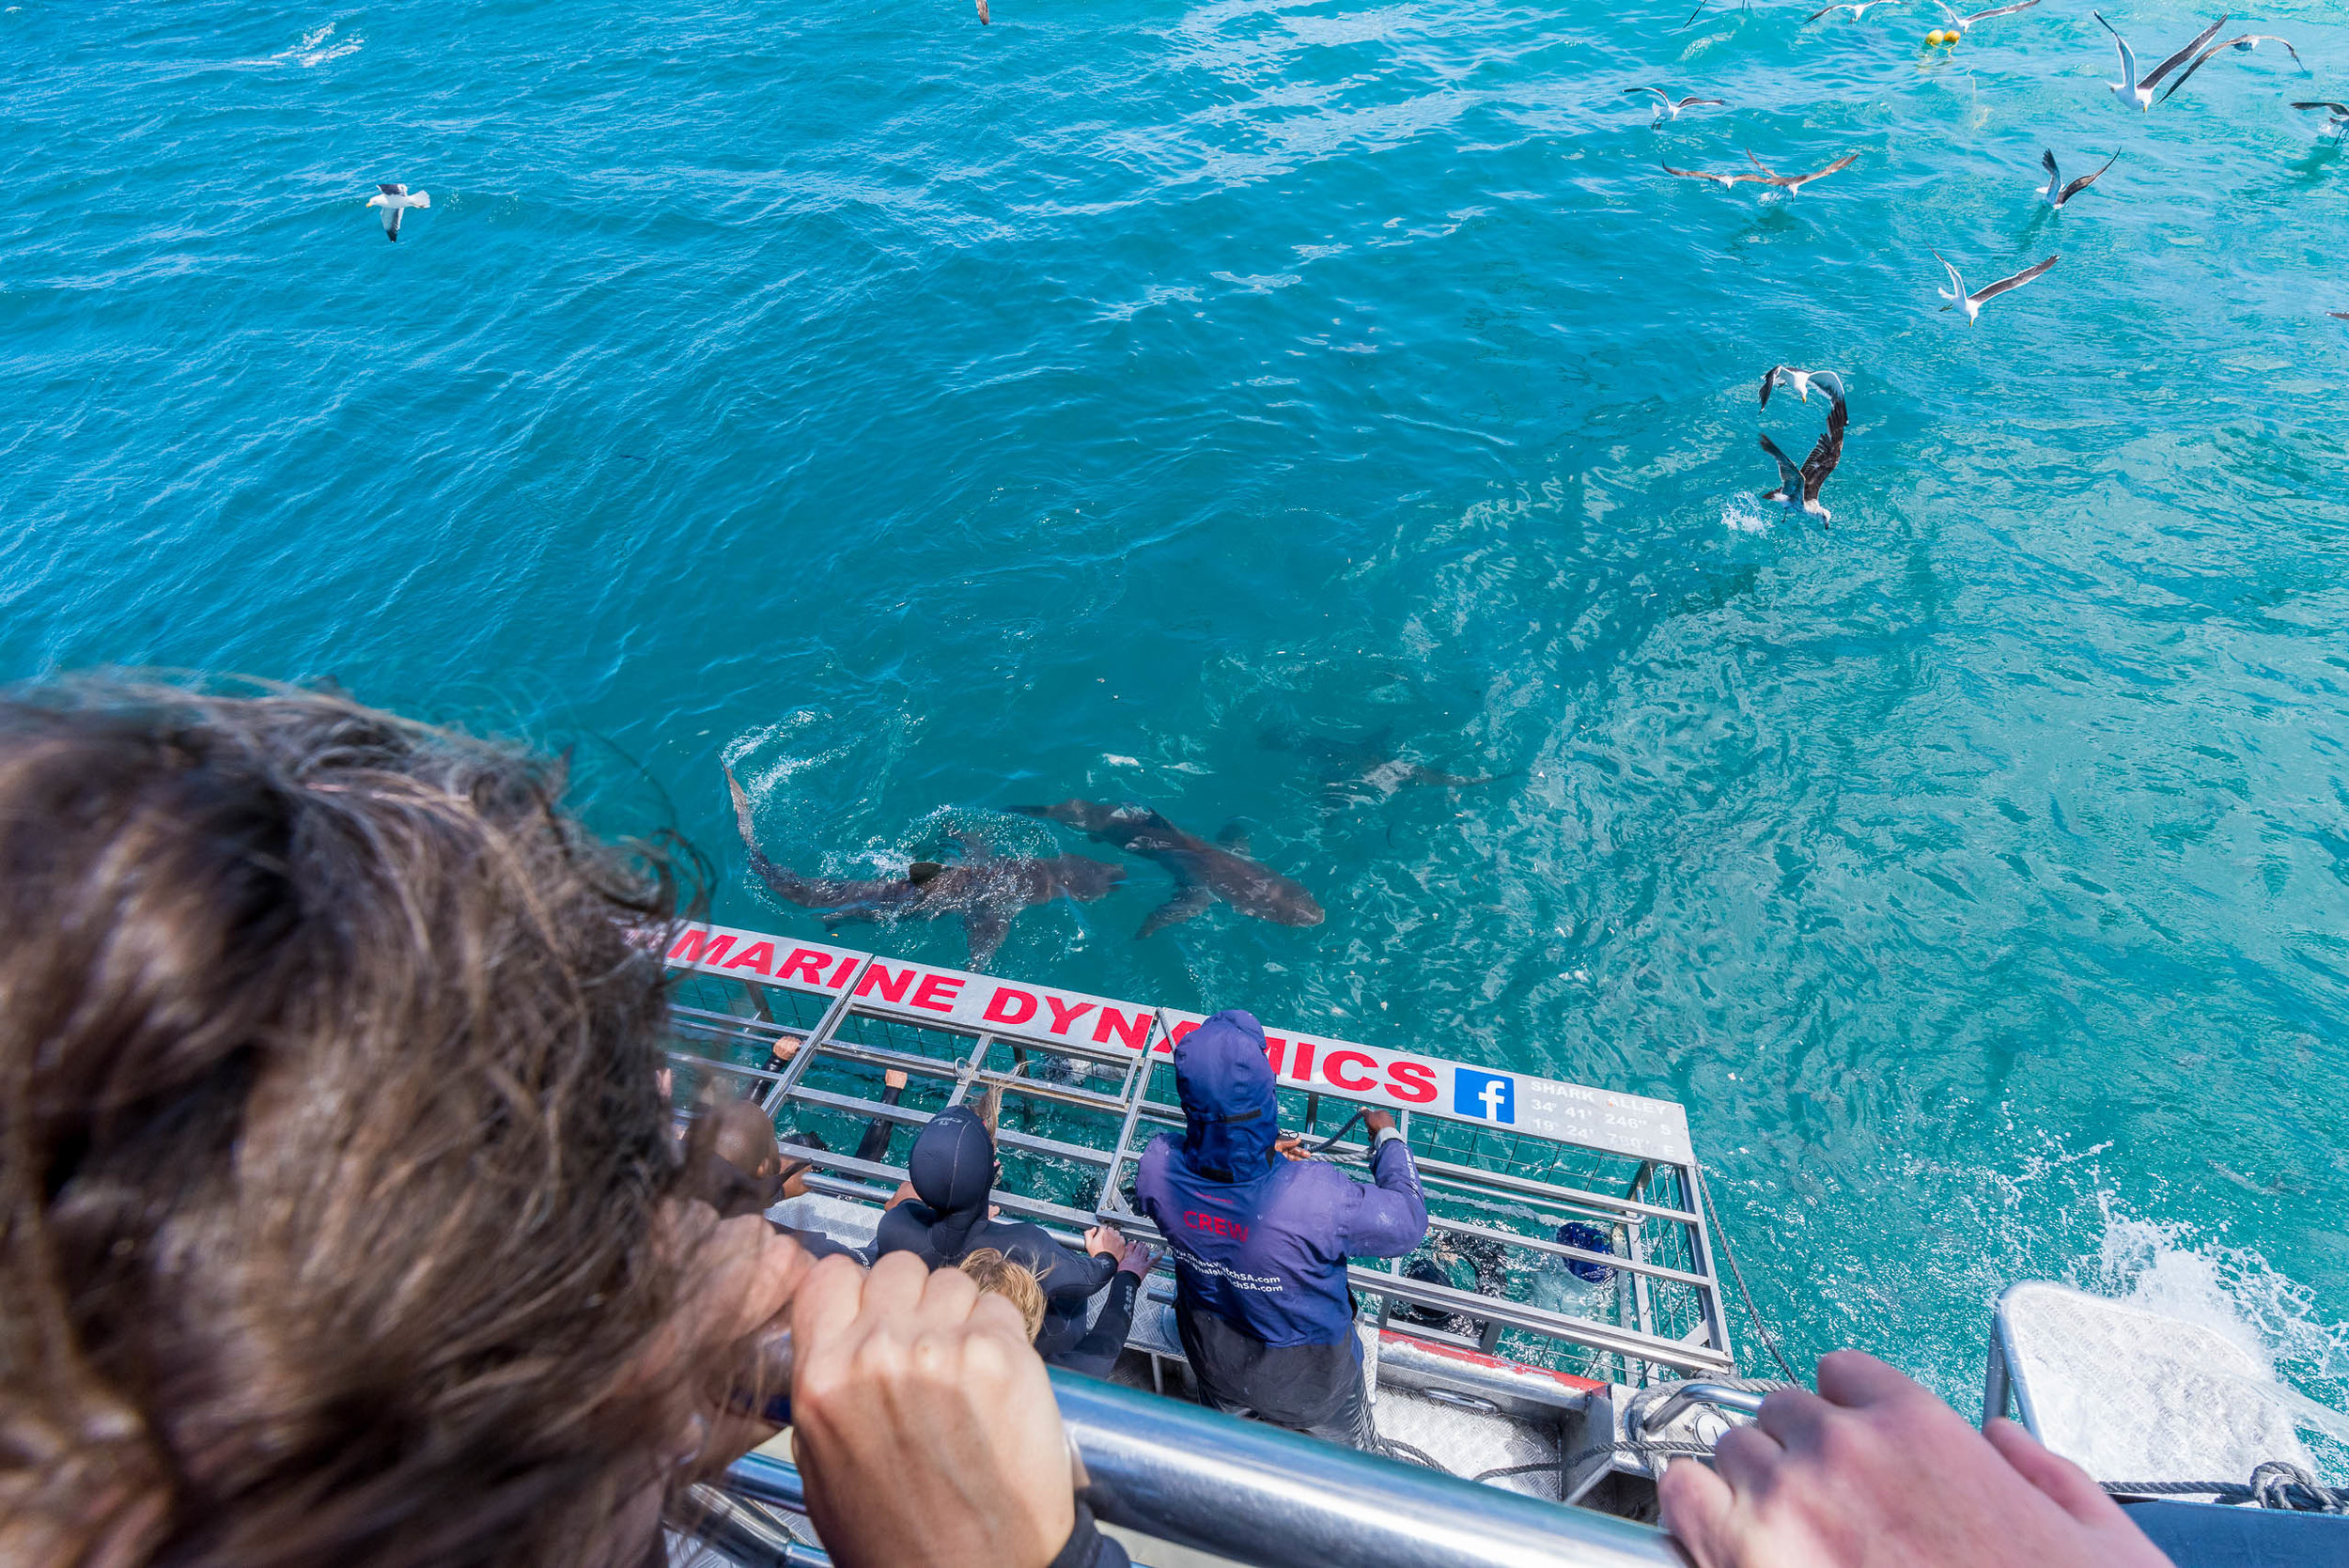 A trio of Copper Sharks gathers near the Marine Dynamics cage during an outing in Gansbaai, South Africa.